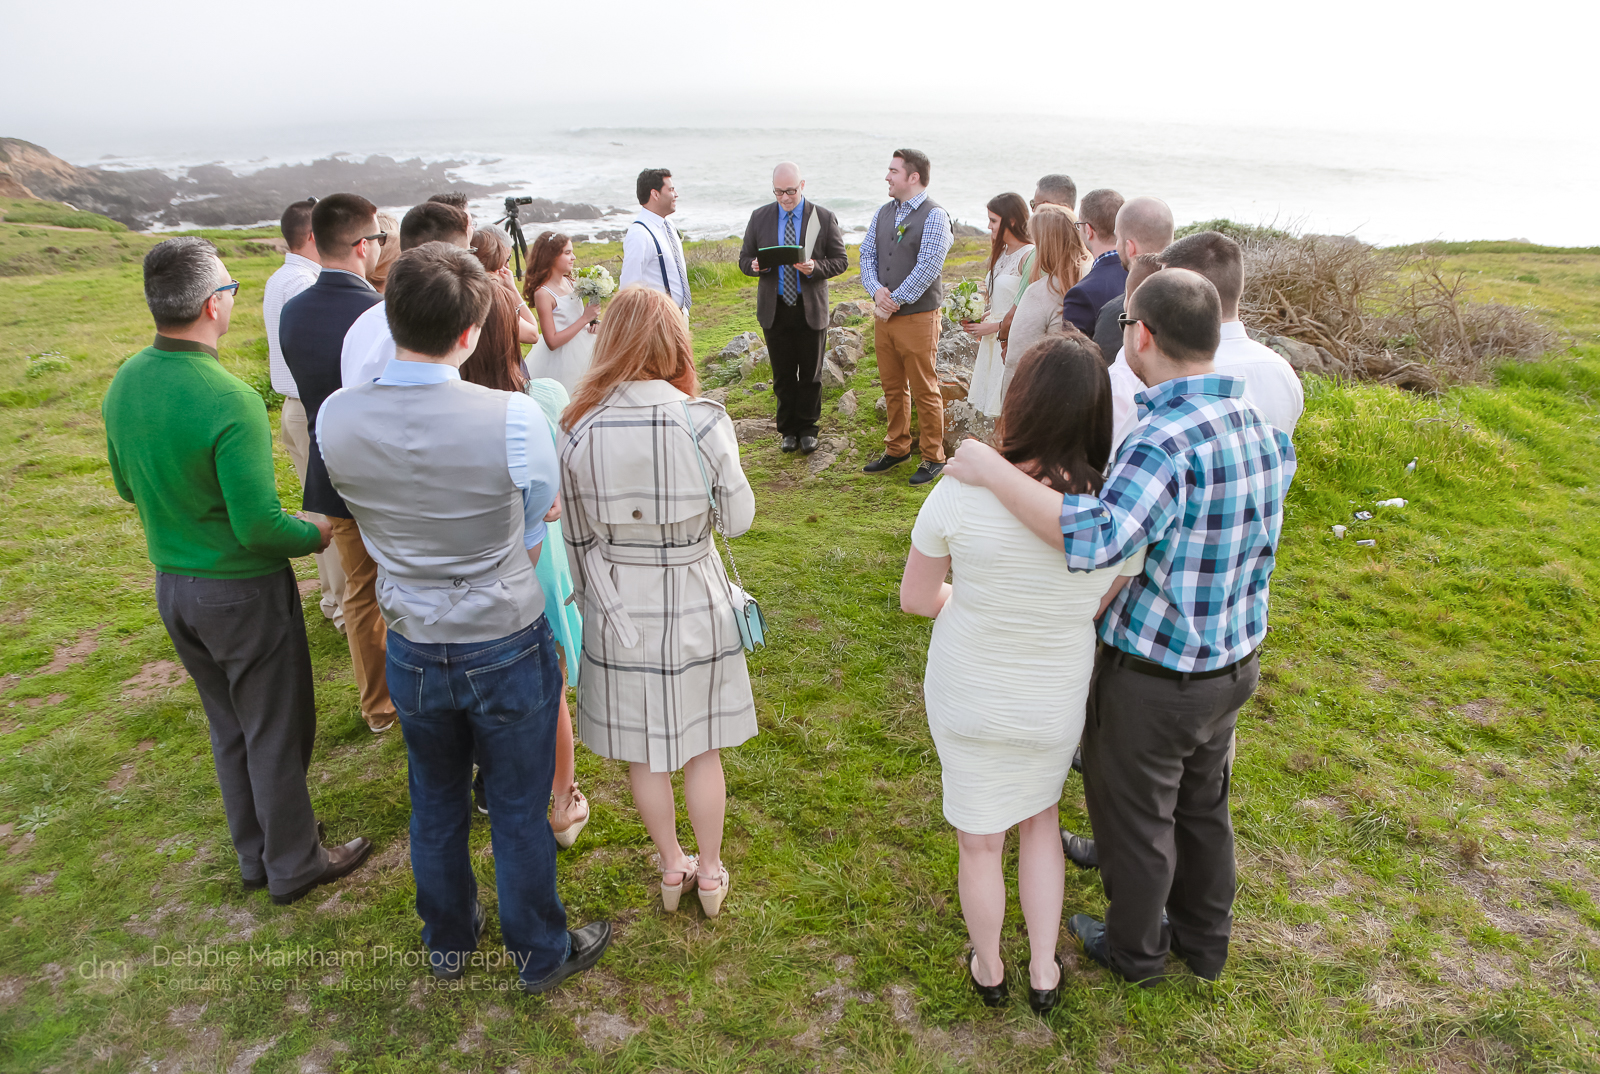 A+R_Gay Wedding_Portraits_Married_Cambria_Robin's_California_Coast__Photographer-6